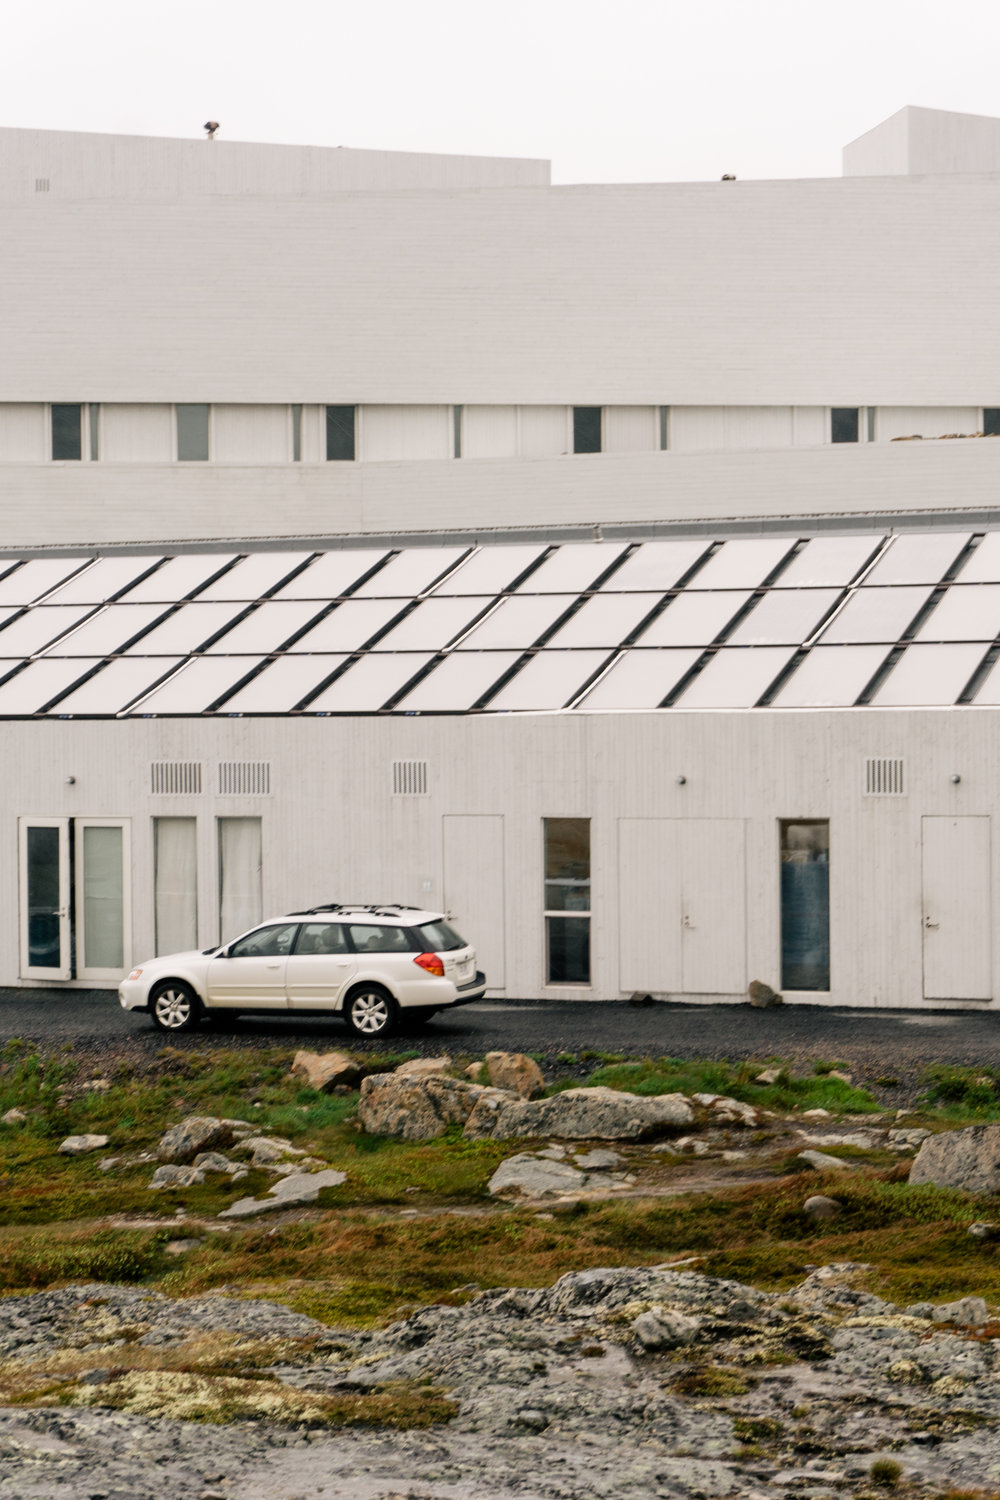 Solar-thermal panels stylishly cover the entirety of one of the buildings.